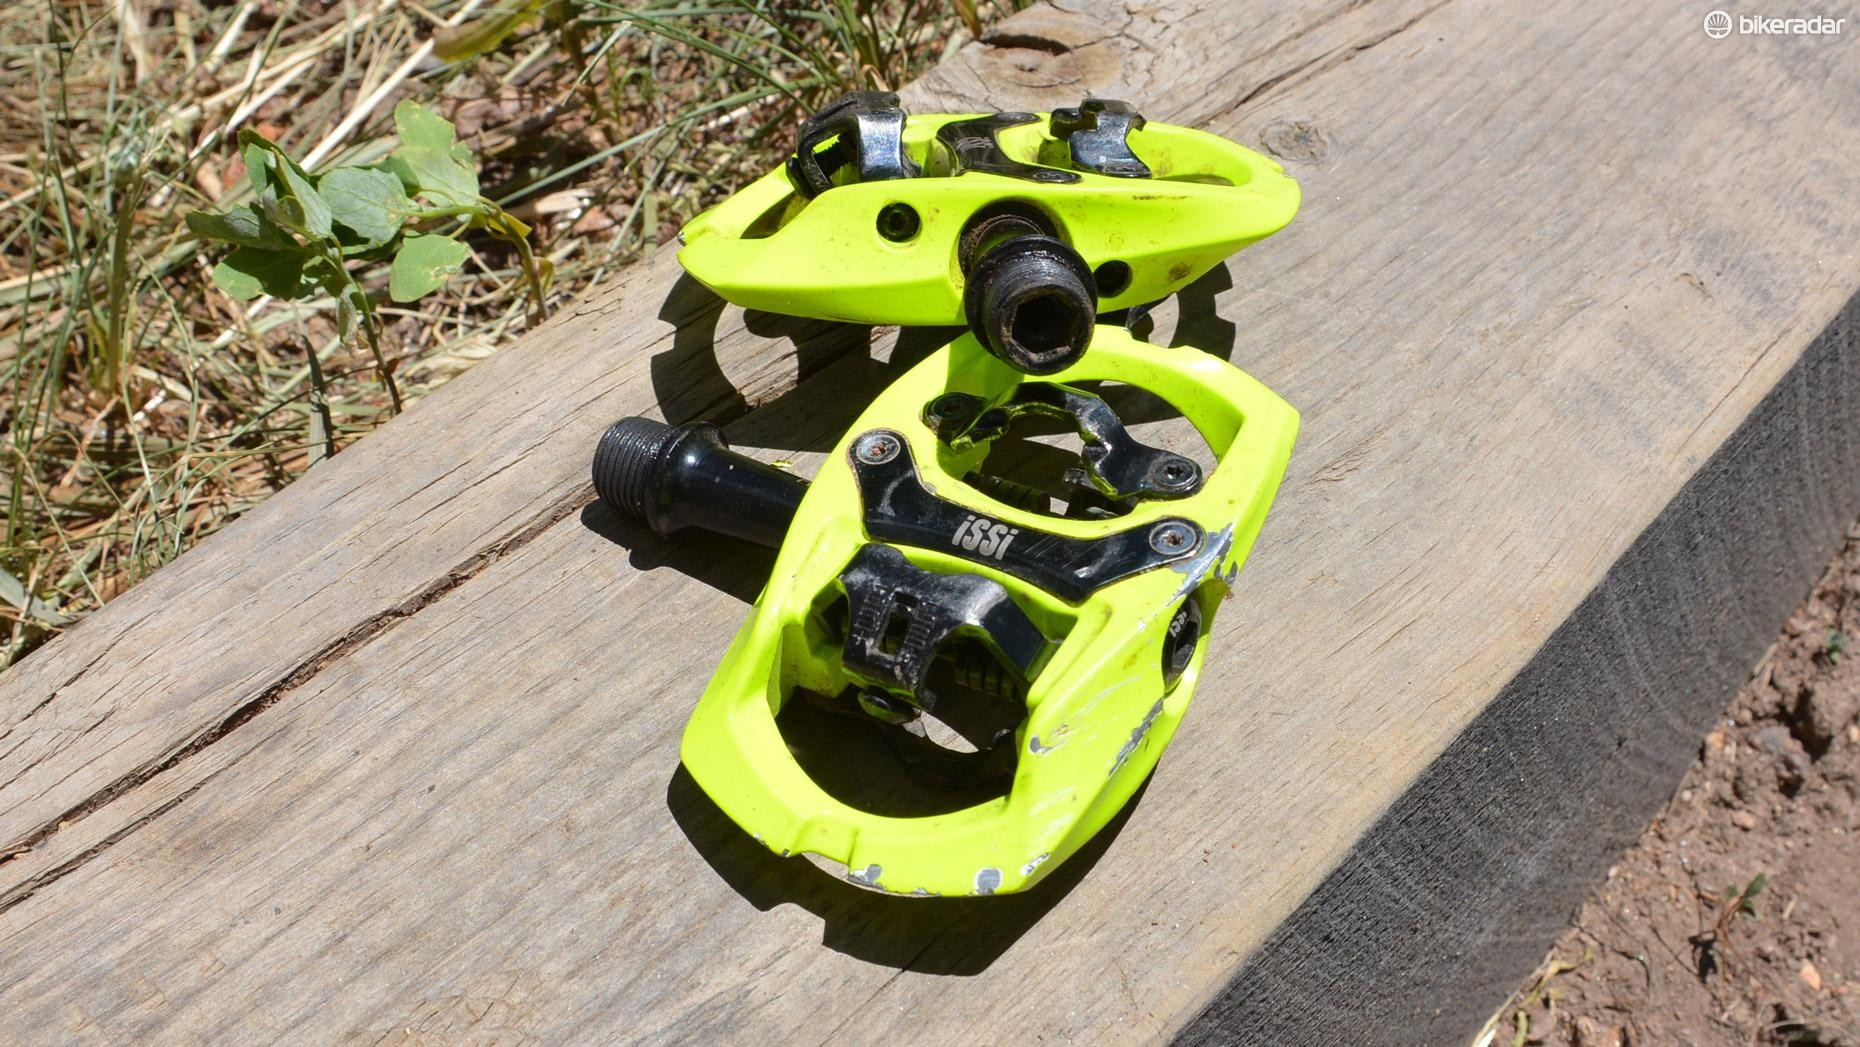 iSSi Trail pedals have the ambitious goal of taking on Shimano's trail pedals